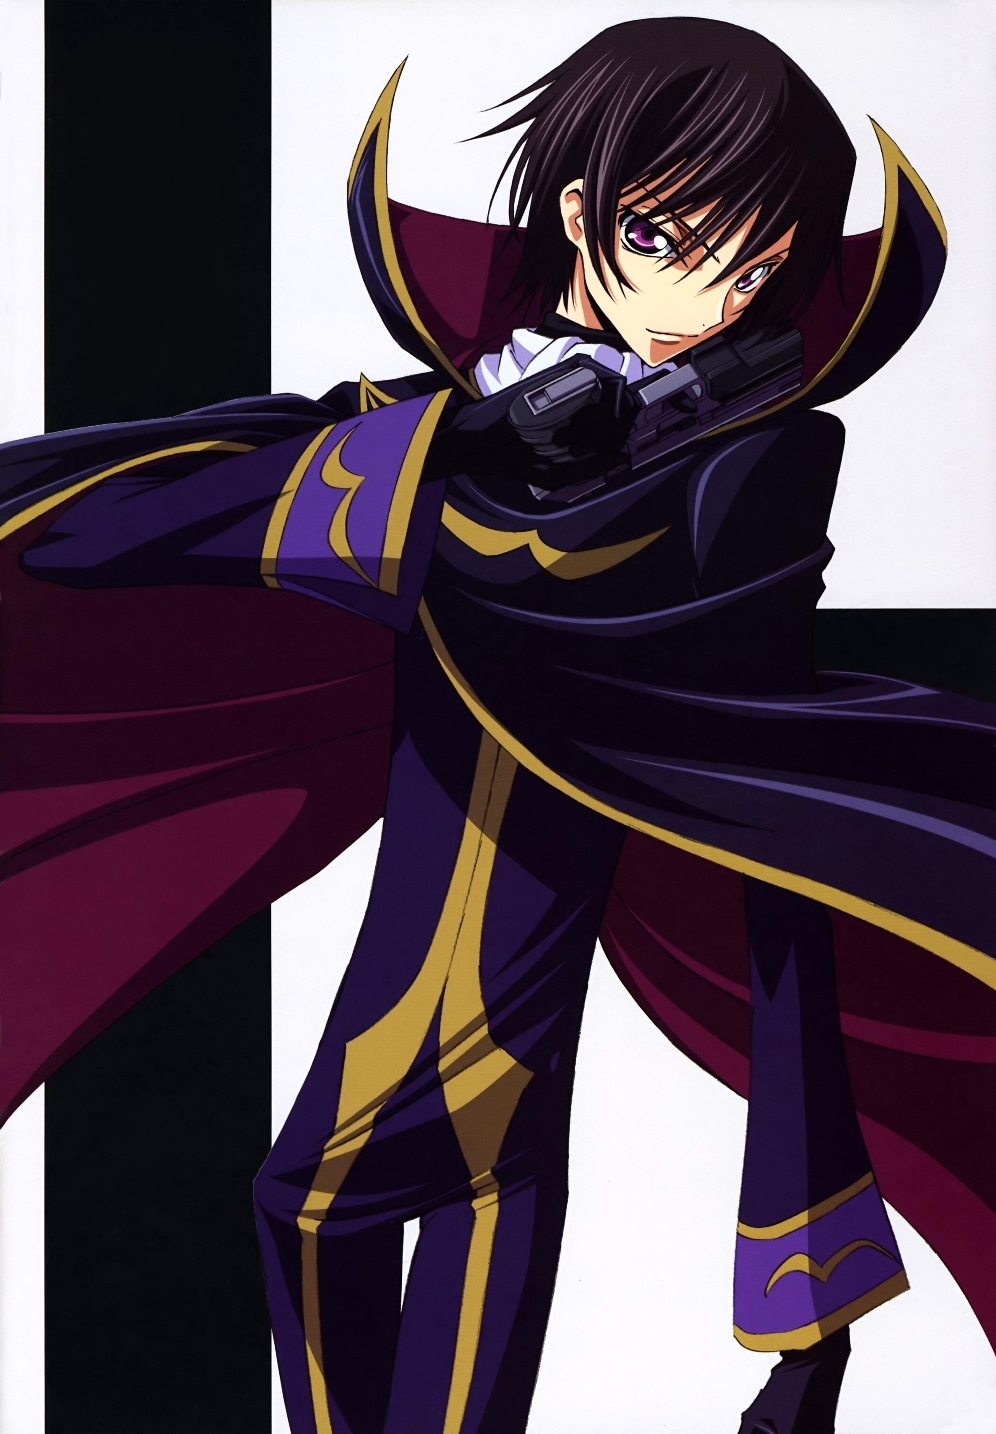 code geass images lelouch hd wallpaper and background. Black Bedroom Furniture Sets. Home Design Ideas